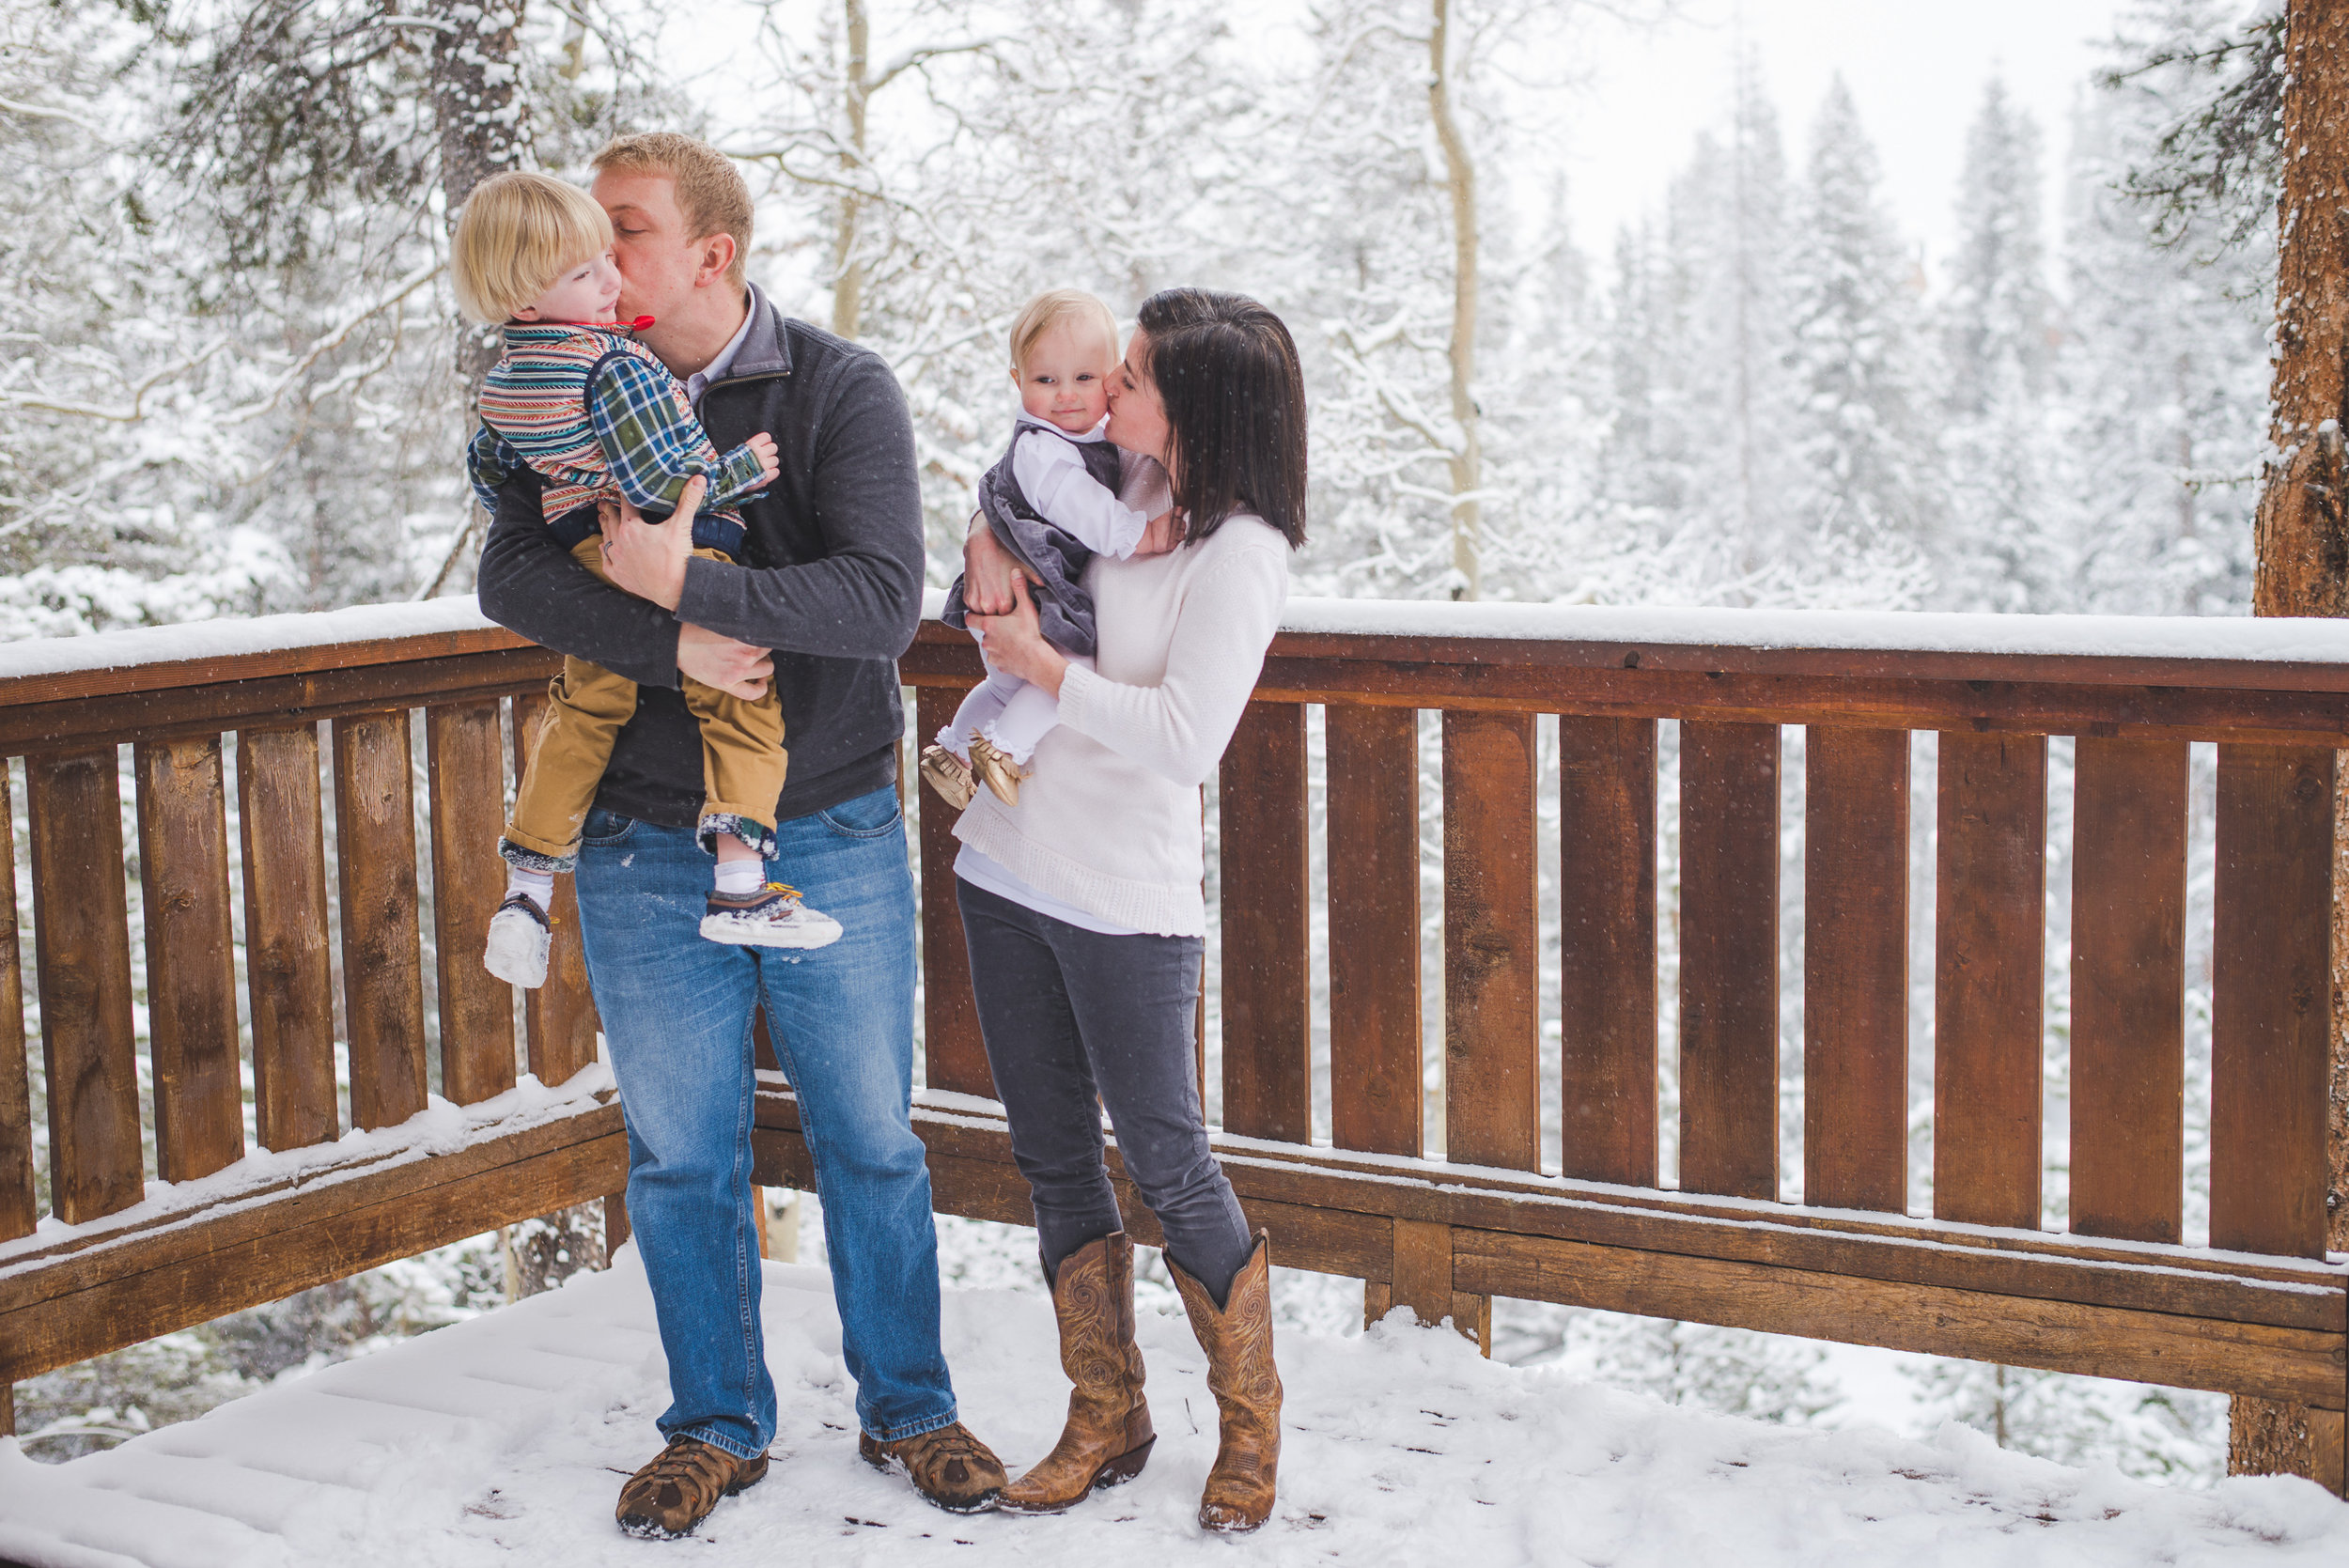 Kisses for the kids during their winter family photo shoot in Breckenridge, Colorado